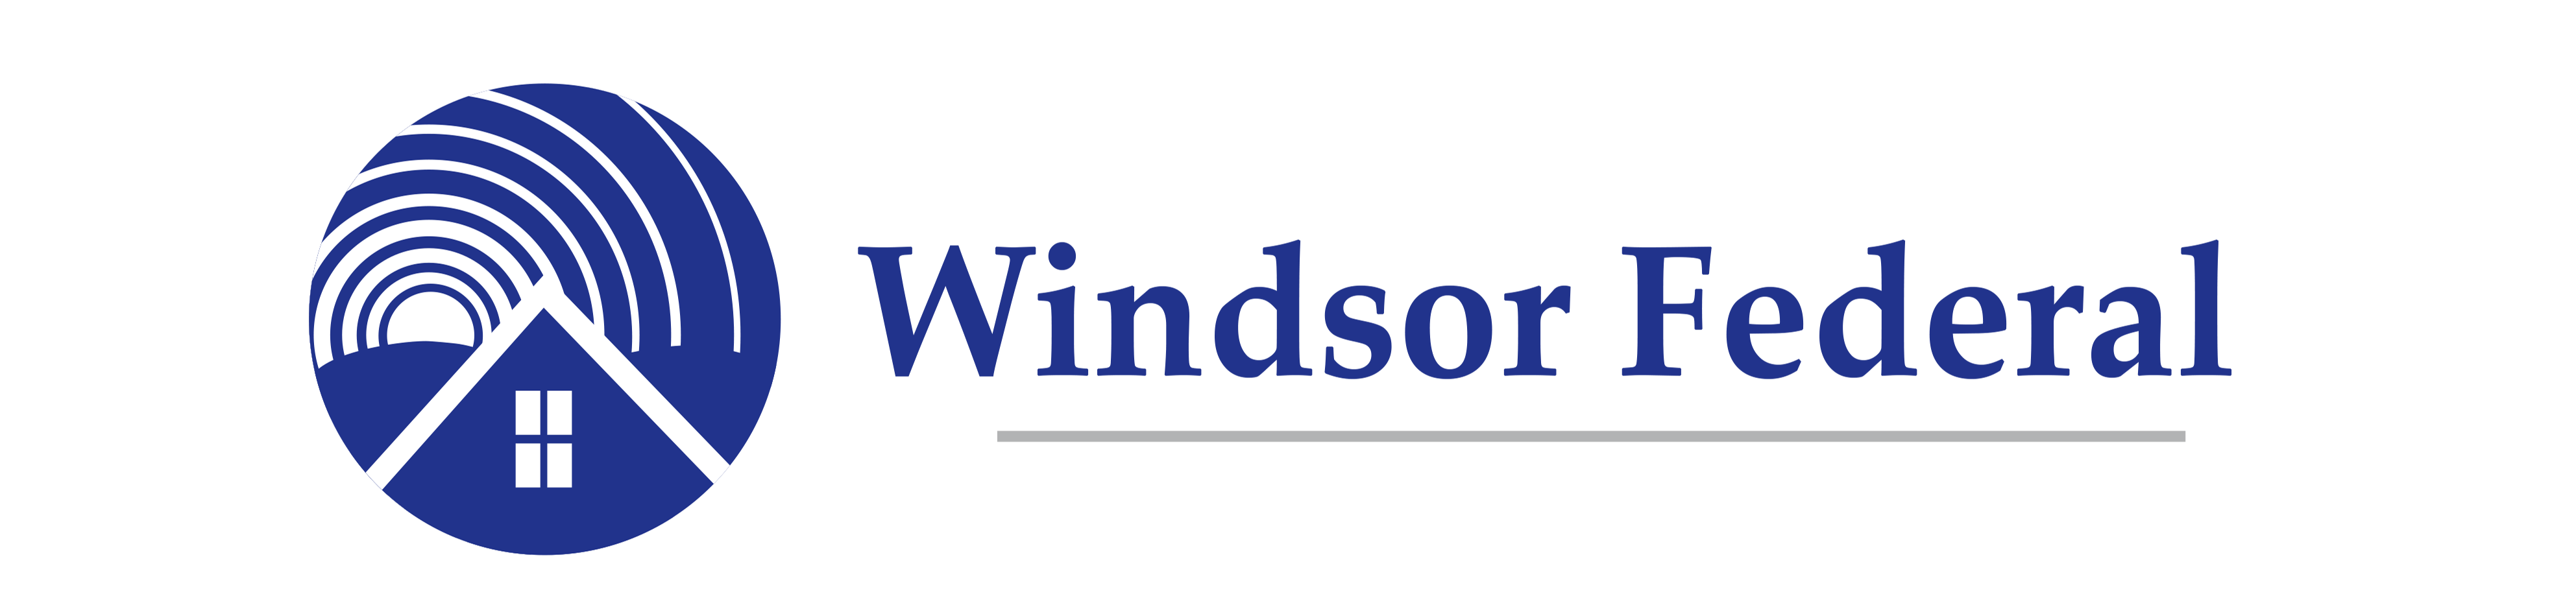 Windsor Federal logo